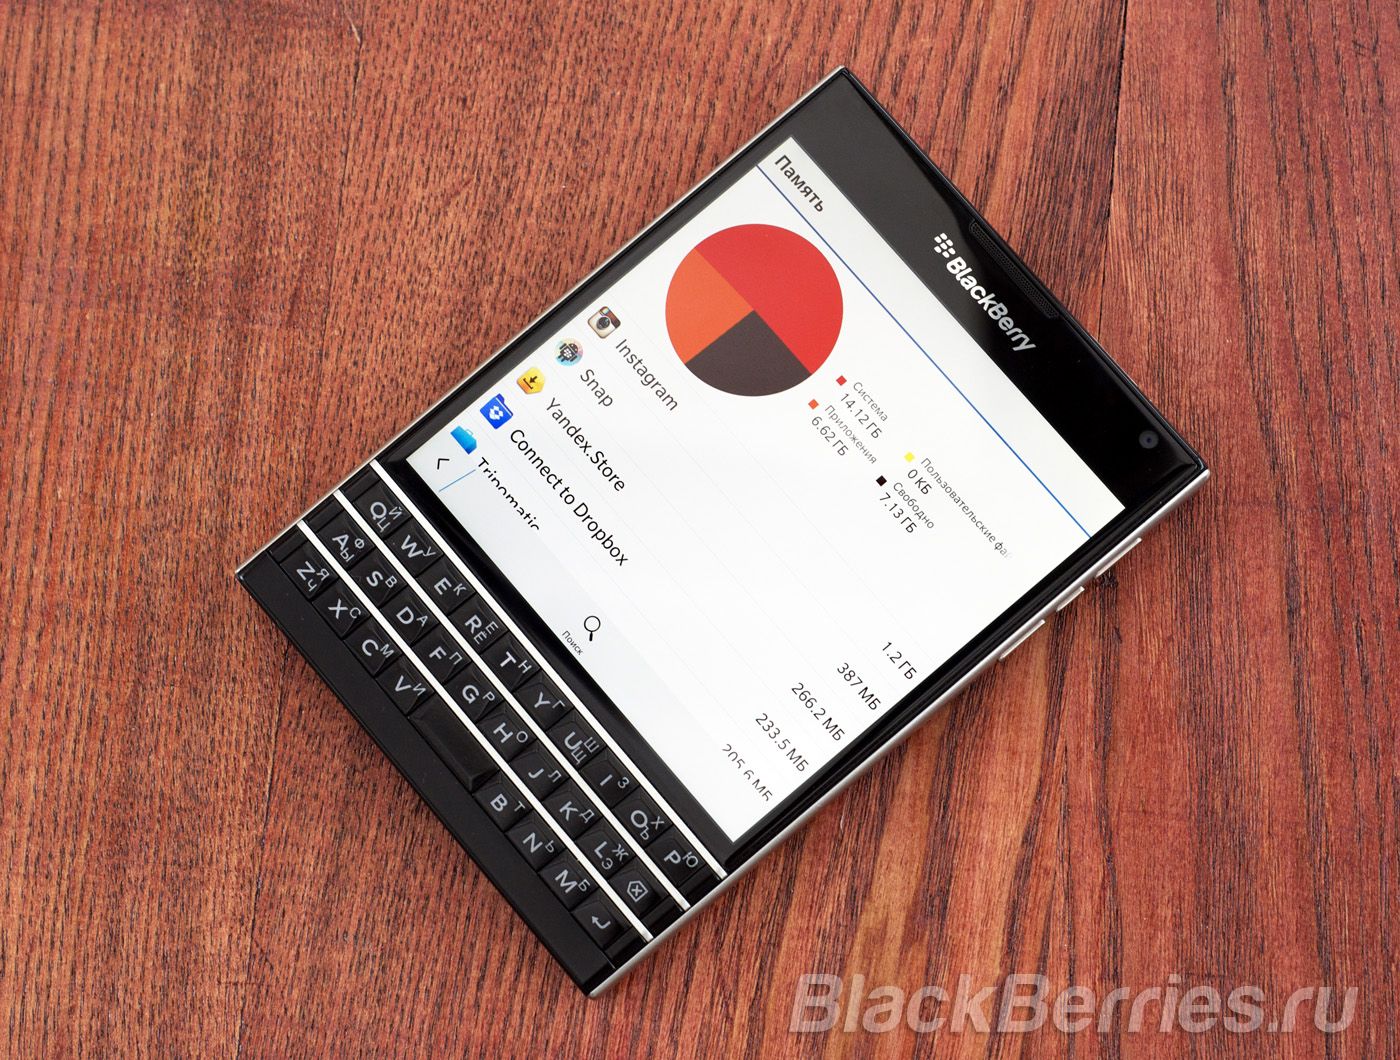 BlackBerry-Passport-inst-cash